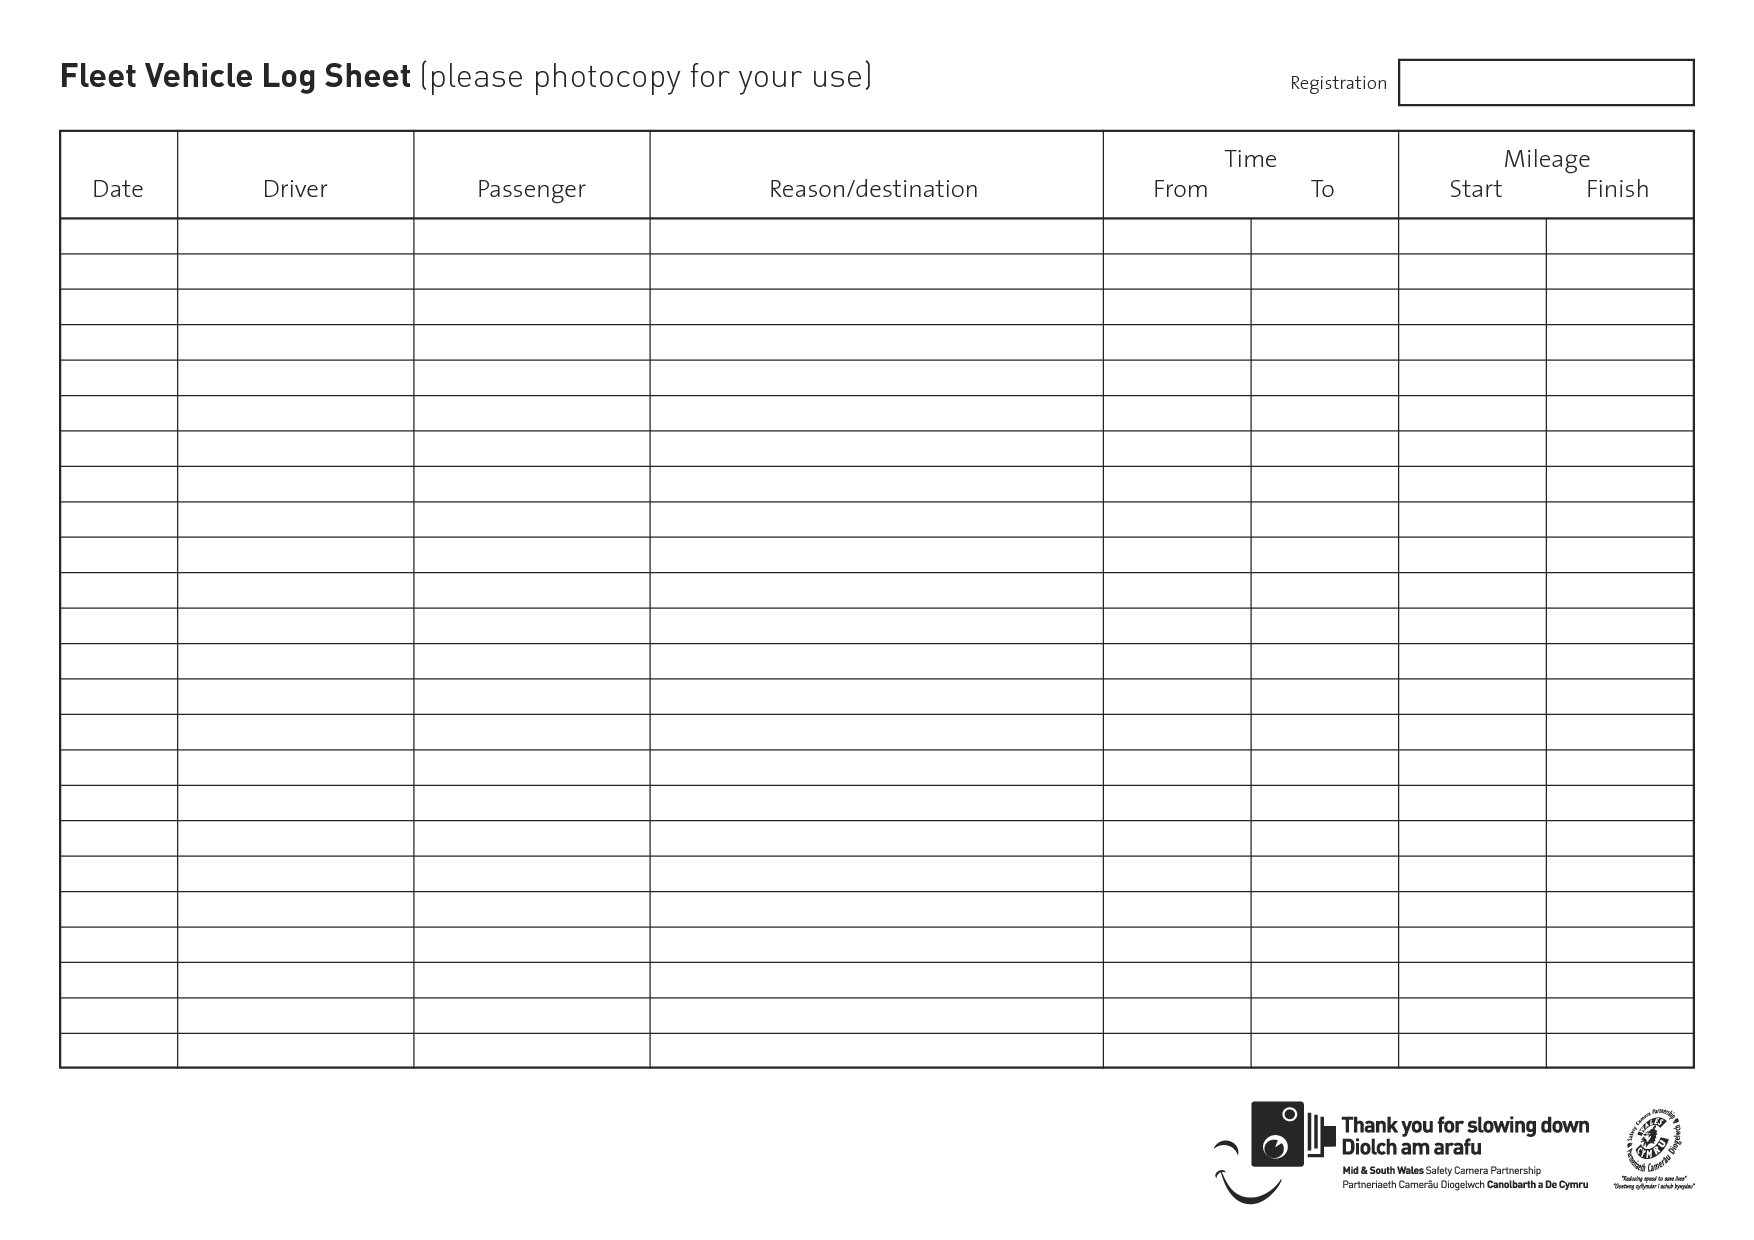 military vehicle log books fleet vehicle log sheet please photocopy for your use. Black Bedroom Furniture Sets. Home Design Ideas